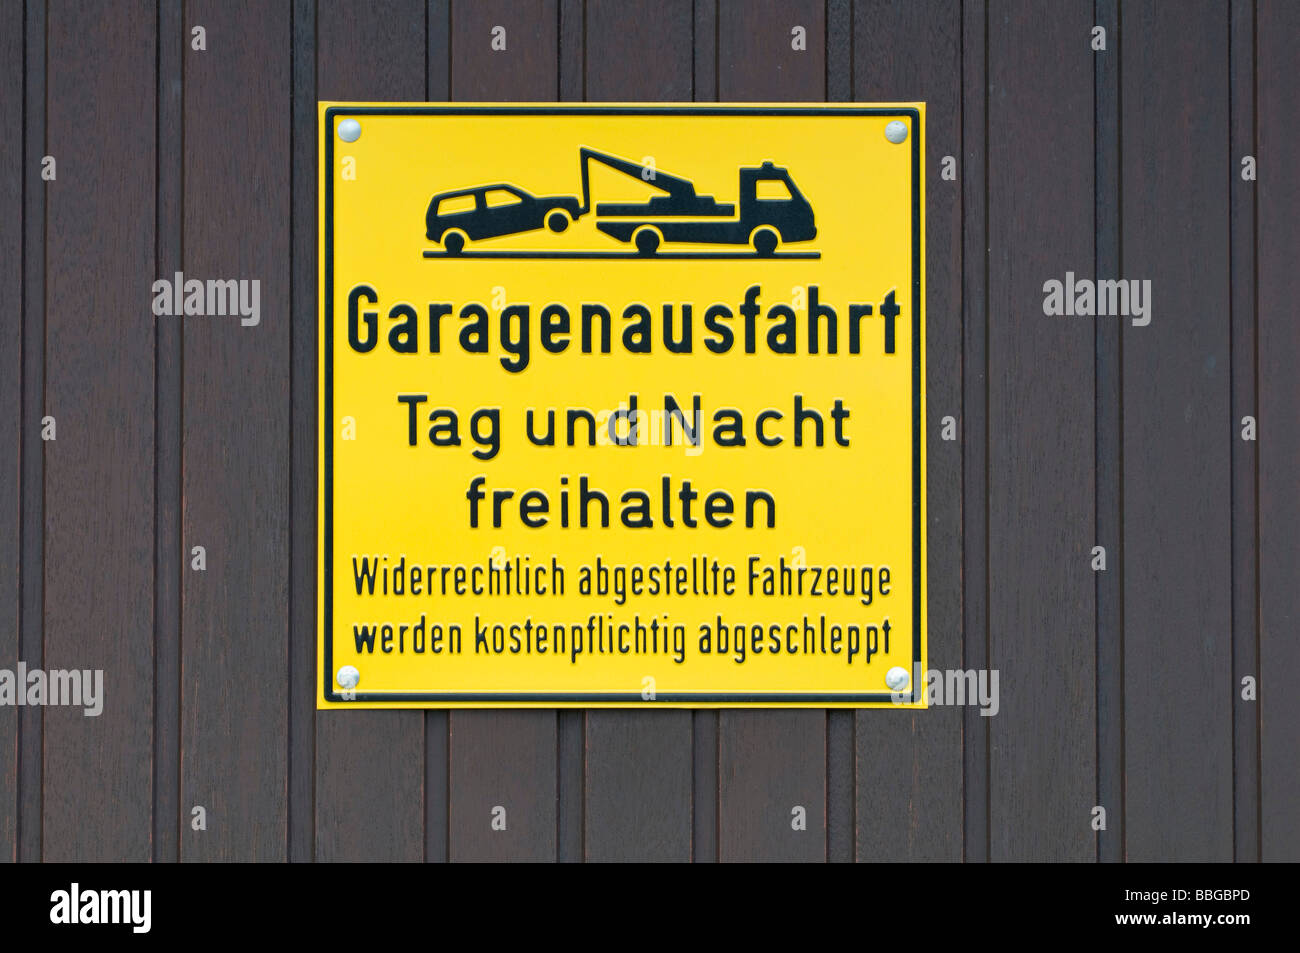 Yellow sign on garage door, keep the garage exit accessible day and night, unlawfully parked vehicles will be towed - Stock Image